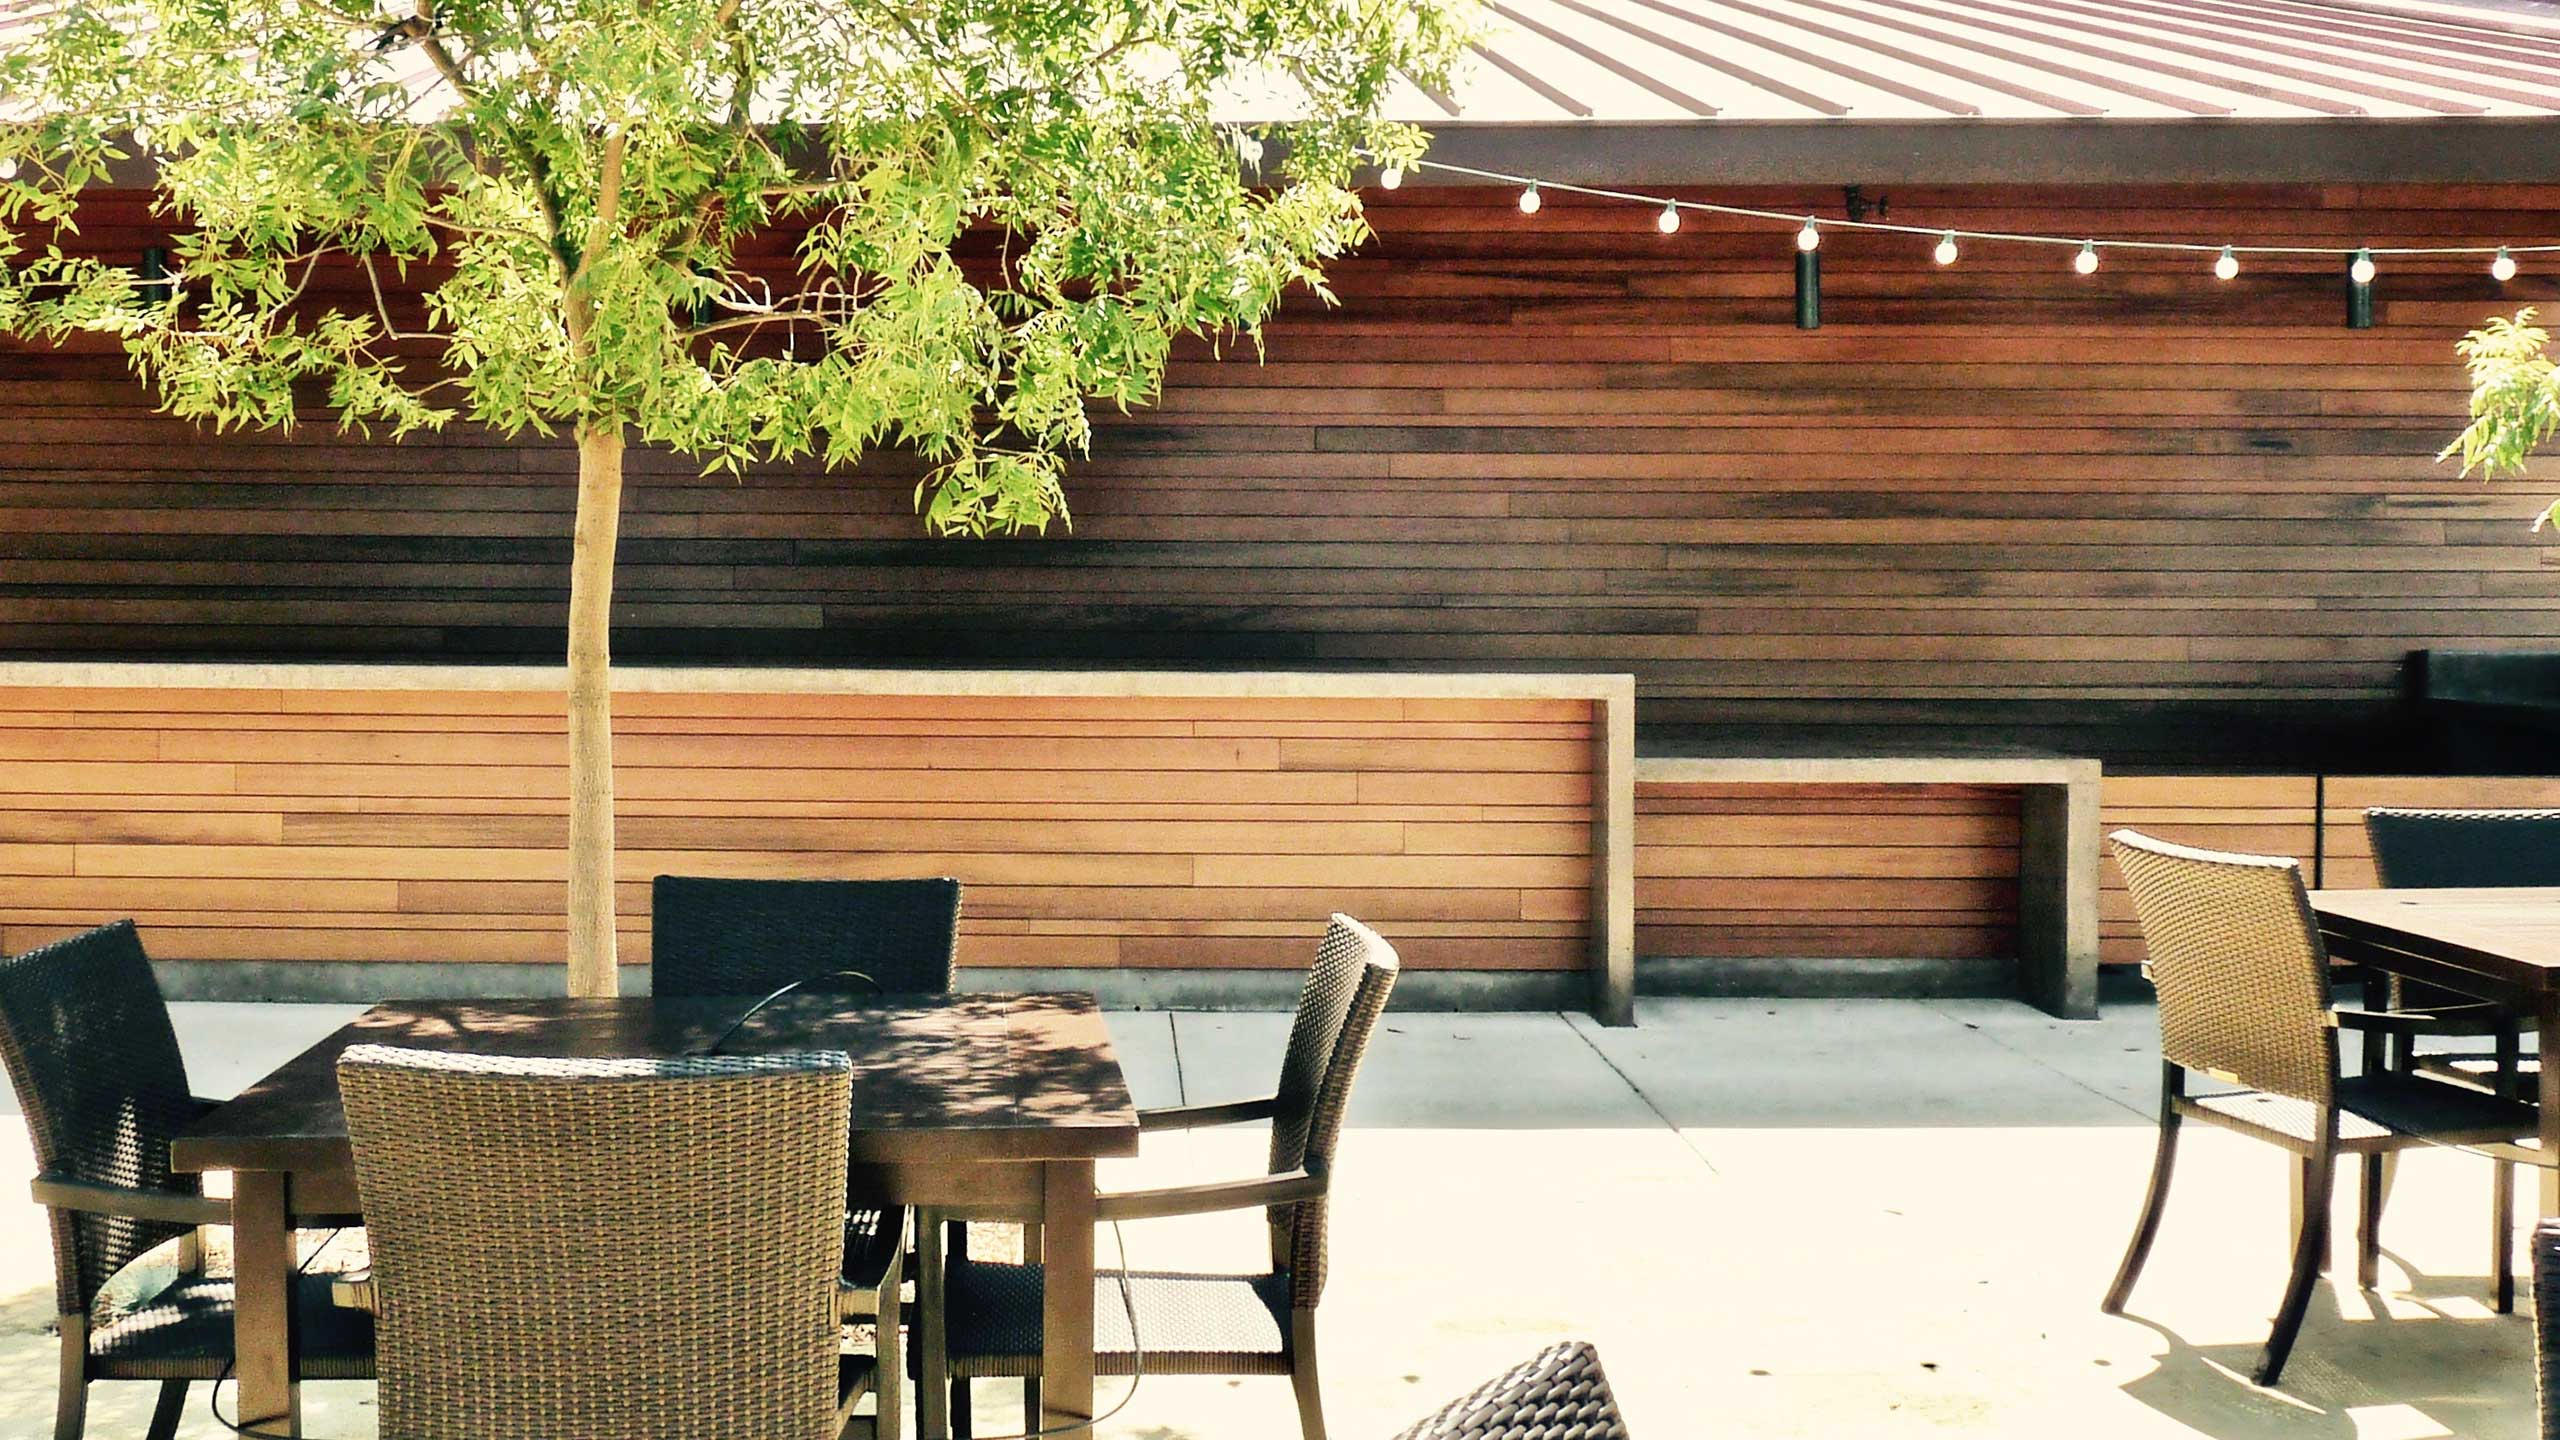 Winery-Architecture-Healdsburg-outdoor-seating-reclaimed-wood